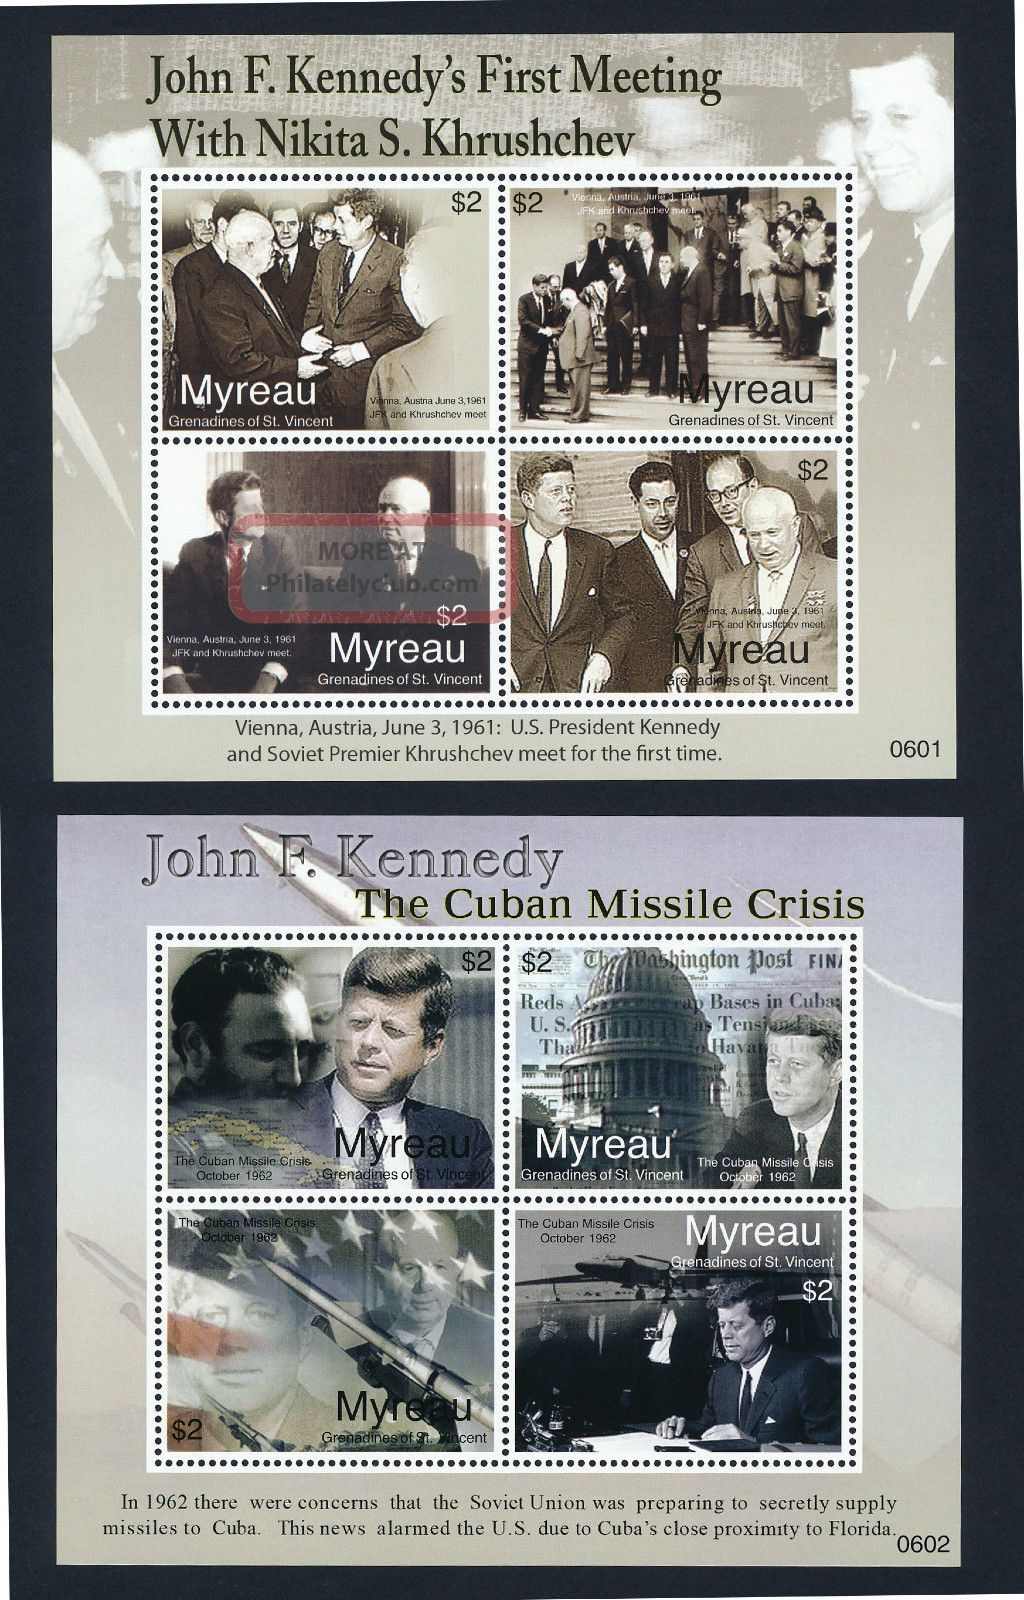 St Vincent Grenadines Myreau 1 - 2 Kennedy,  Missile Crisis,  Aircraft Caribbean photo